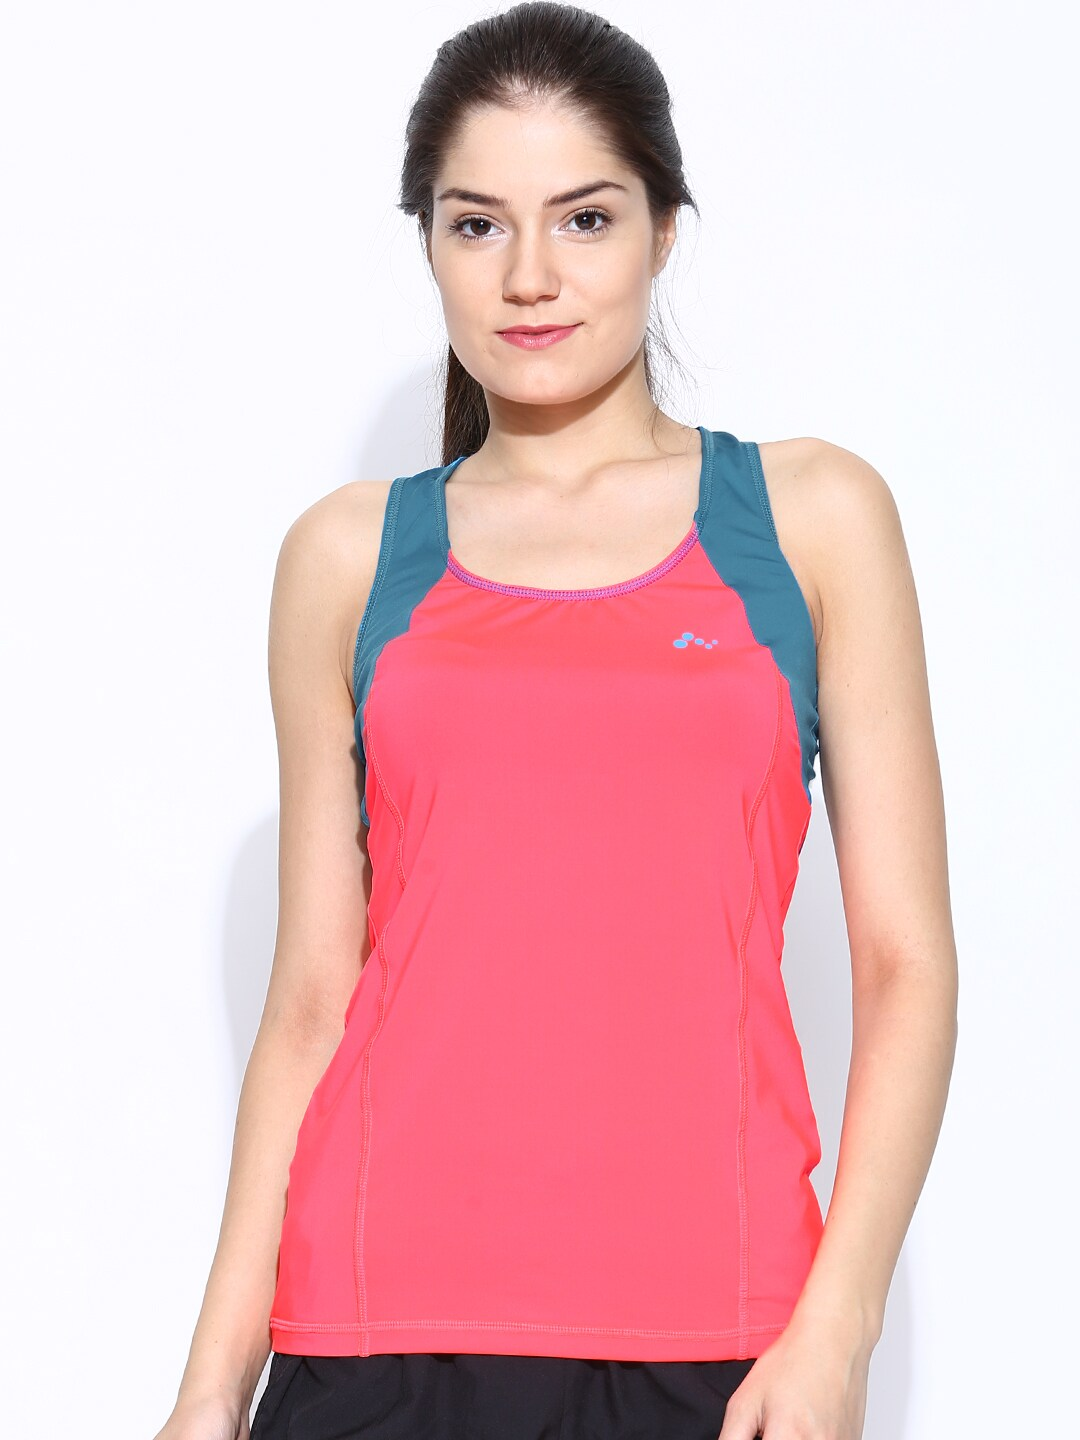 ONLY Neon Pink & Teal Blue Training Tank Top